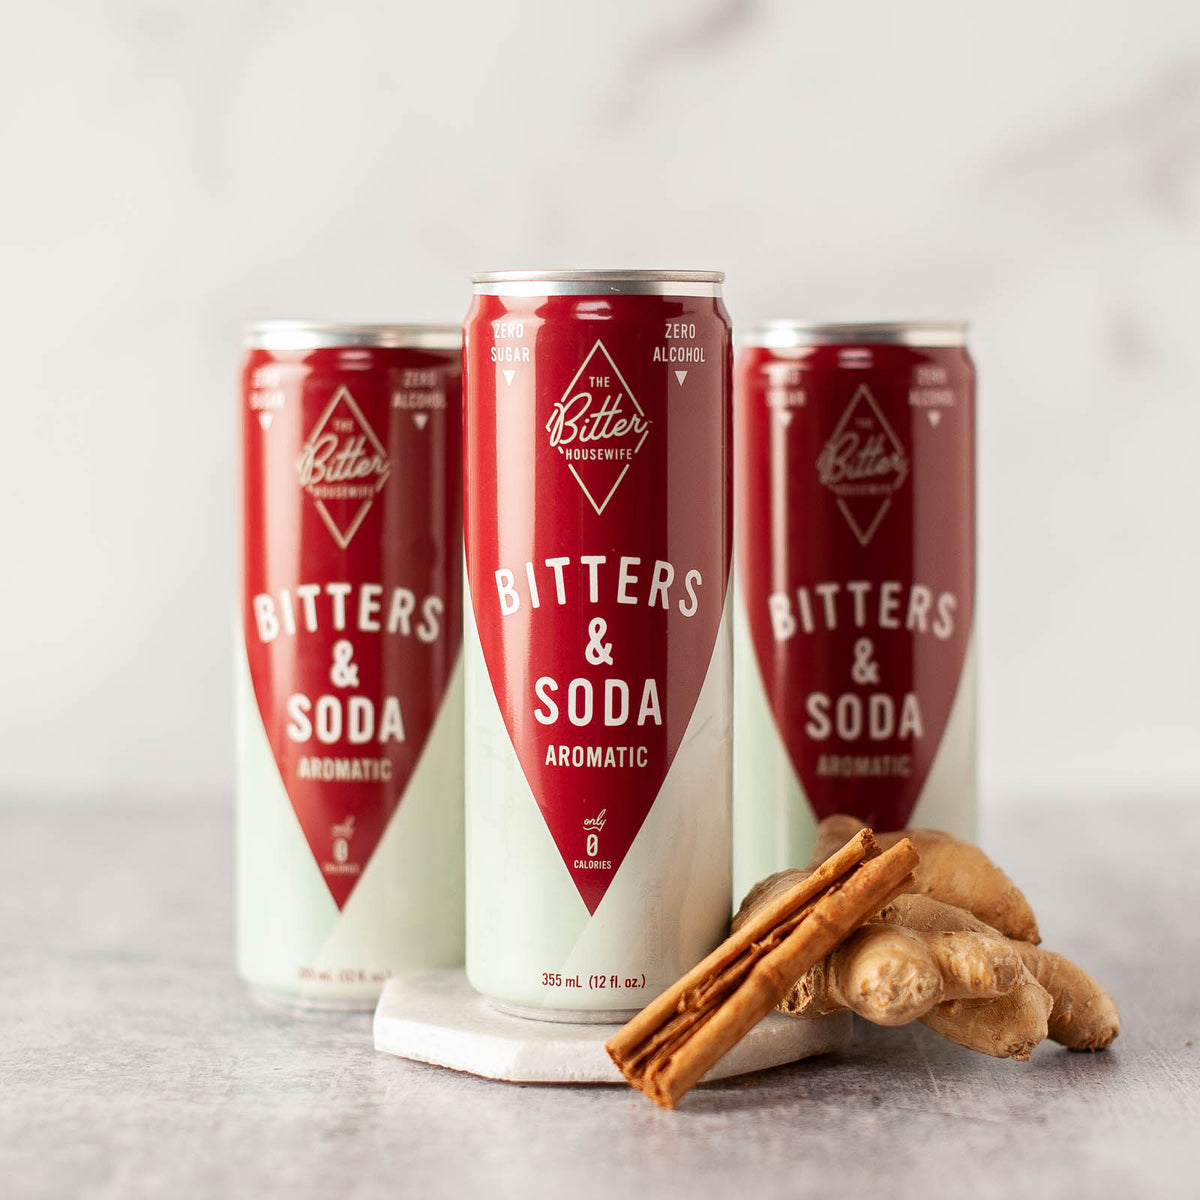 Aromatic Bitters & Soda